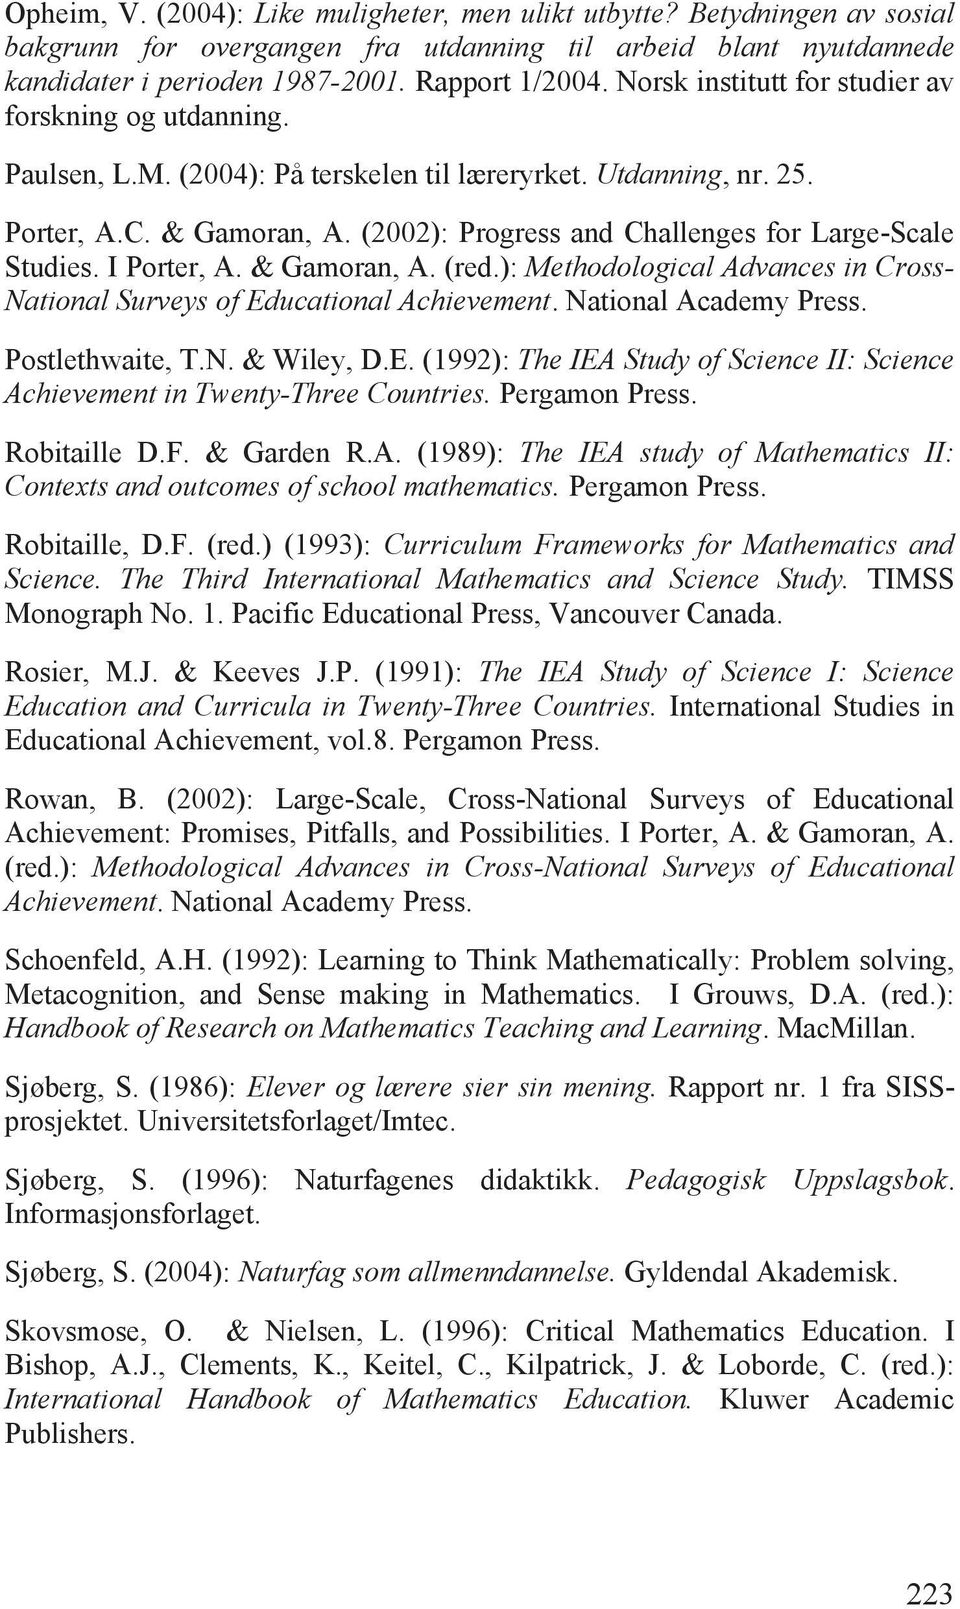 (2002): Progress and Challenges for Large-Scale Studies. I Porter, A. & Gamoran, A. (red.): Methodological Advances in Cross- National Surveys of Educational Achievement. National Academy Press.